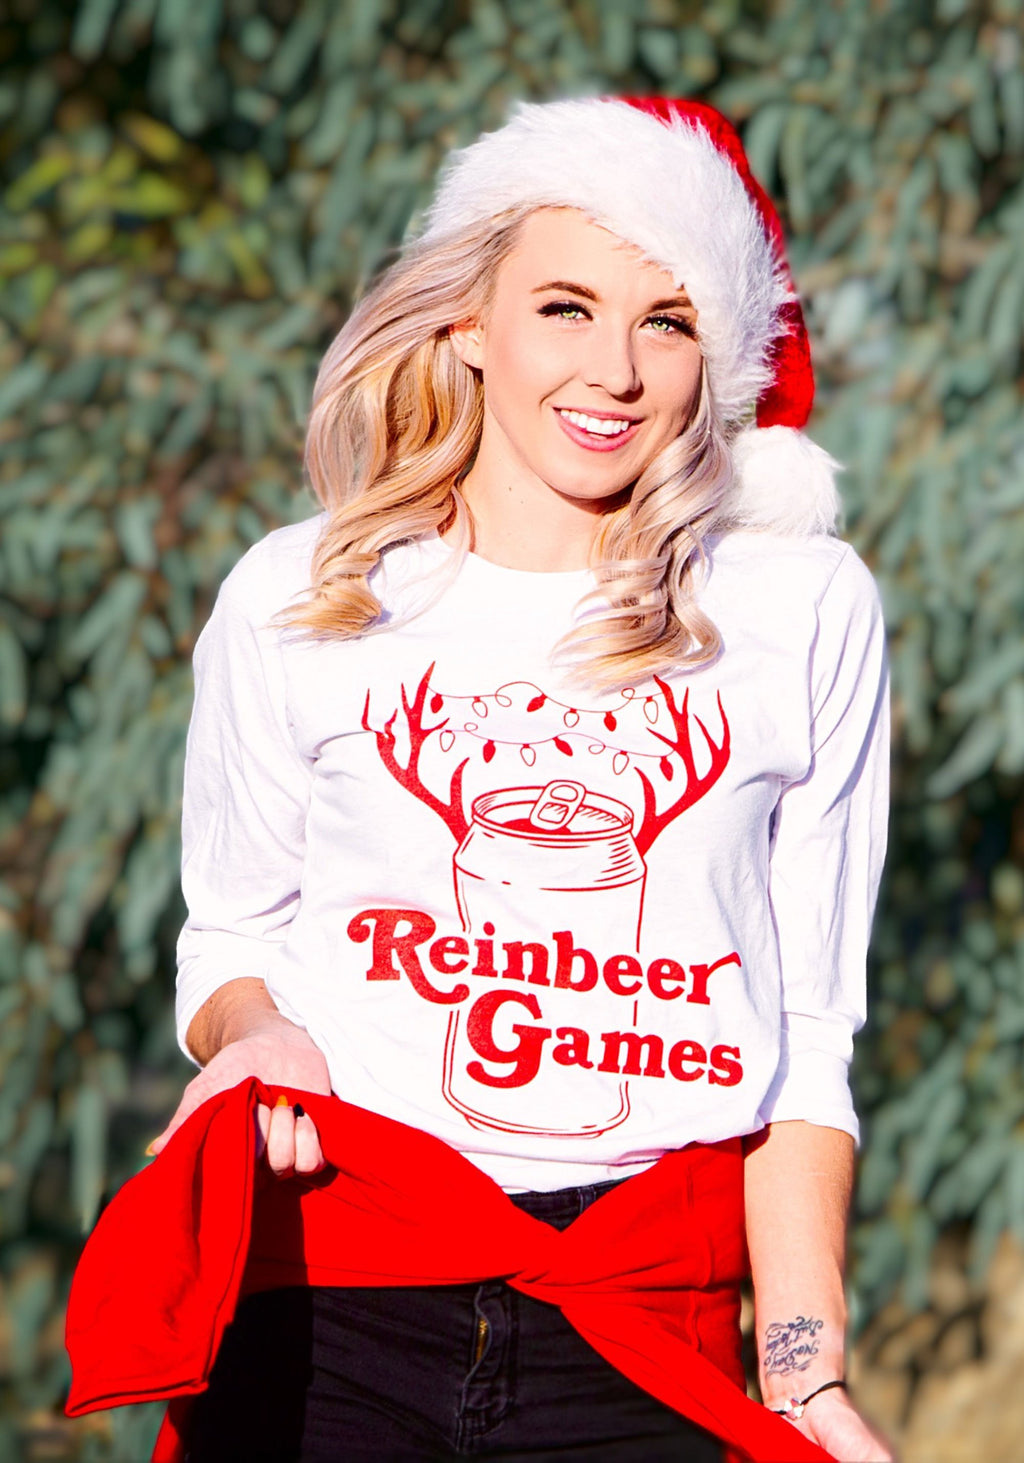 Reinbeer Games Long Sleeve Tee / graphic tees for women / christmas reindeer happy holidays / xmas festive beer drinking